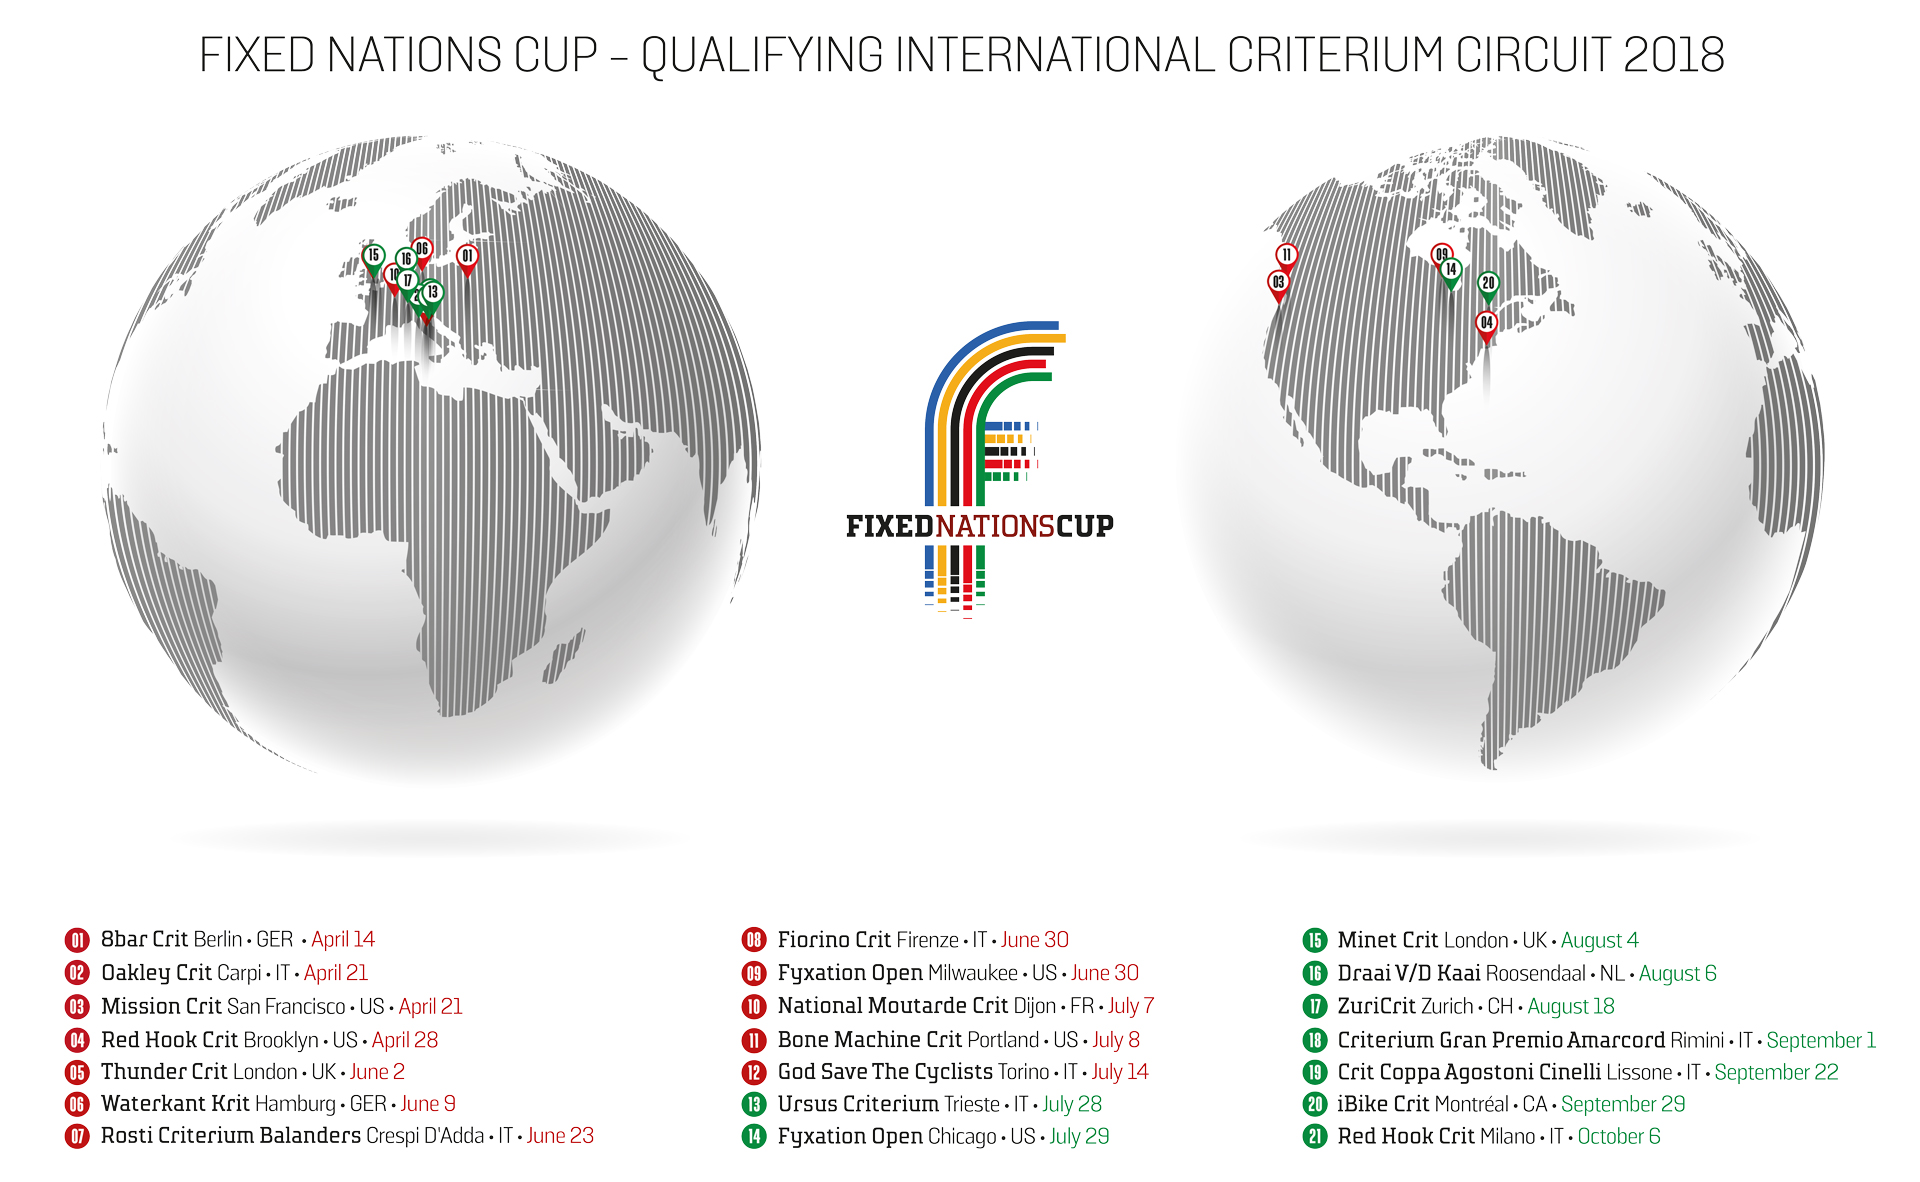 Image provided by Fixed Nations Cup